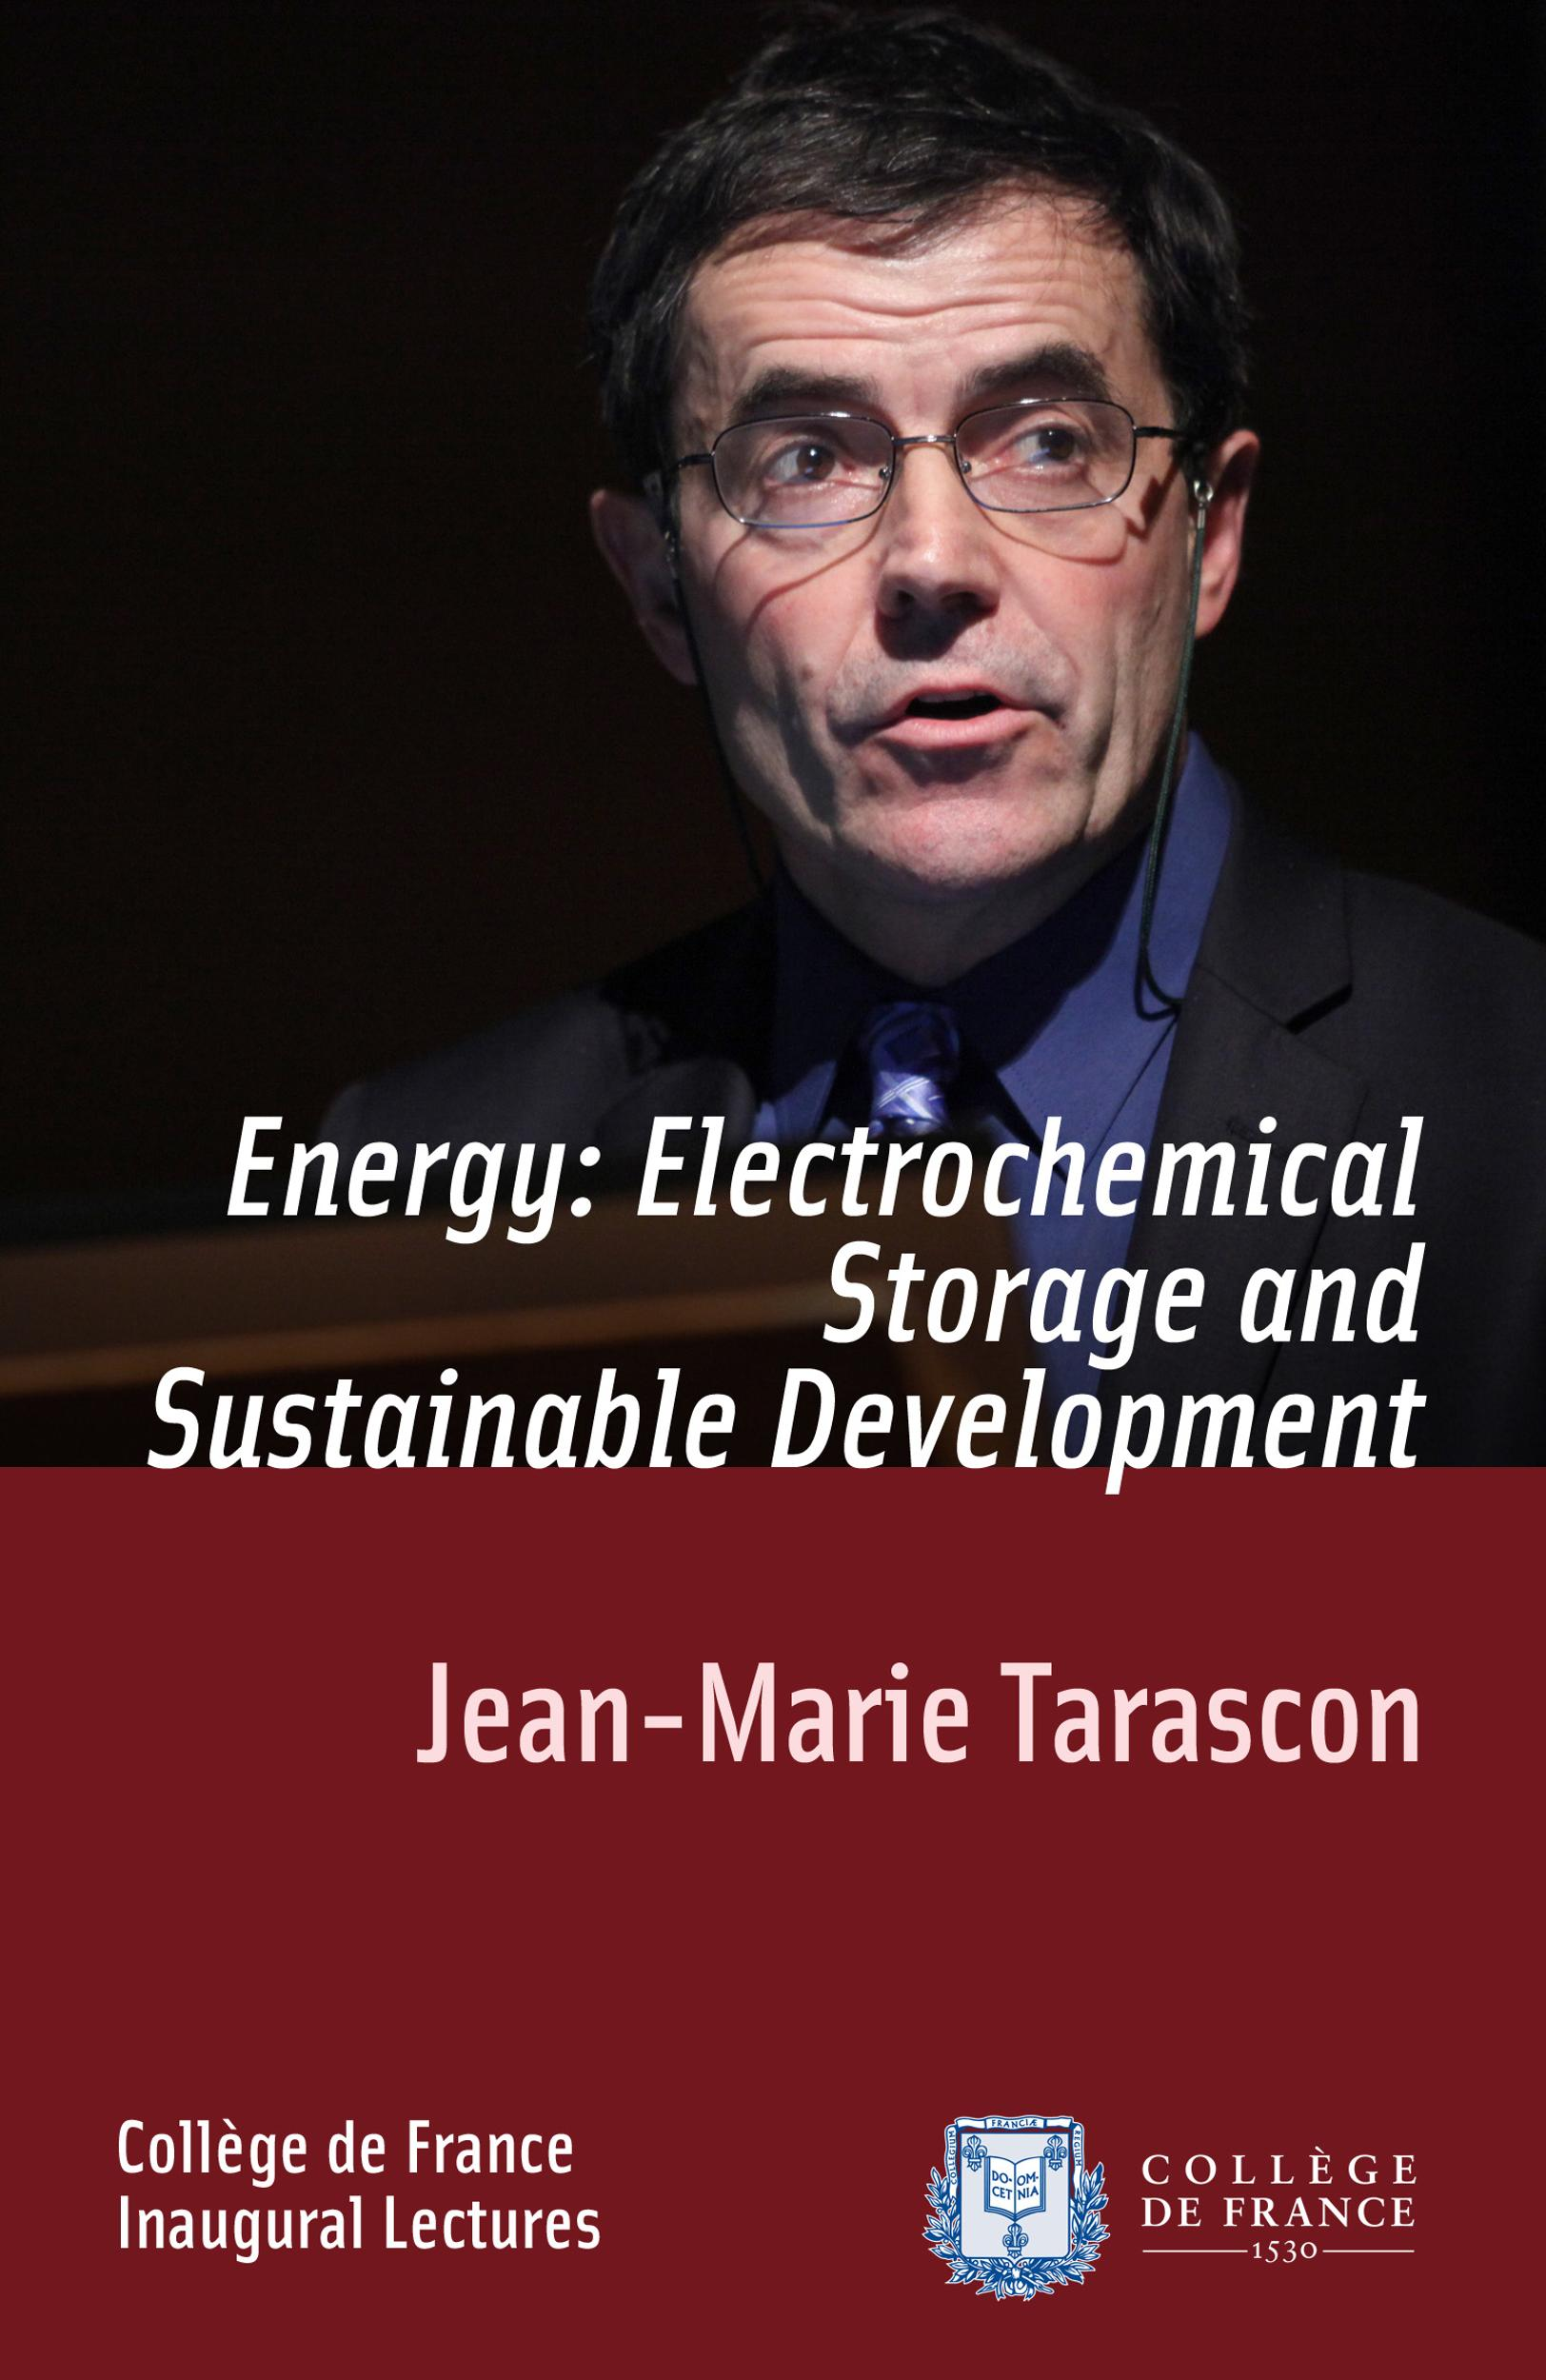 Energy: Electrochemical Storage and Sustainable Development, INAUGURAL LECTURE DELIVERED ON THURSDAY 9DECEMBER2010